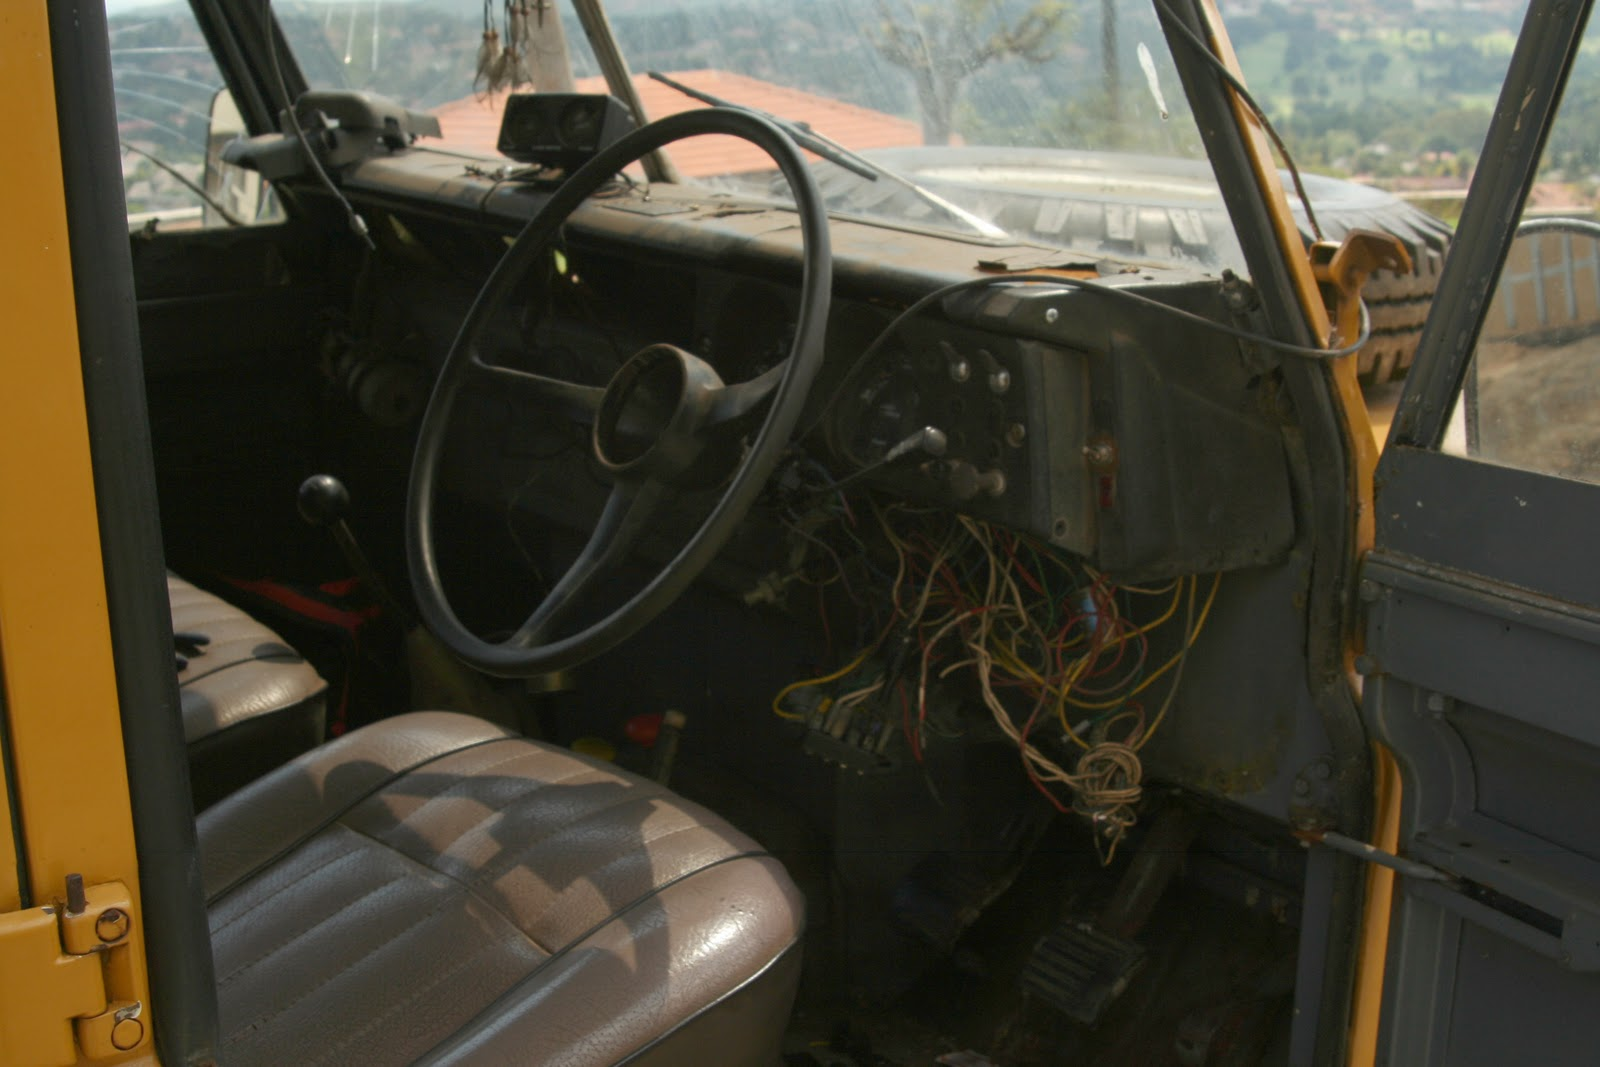 Rebuilding A Legendary Land Rover Series 3 Iii Wiring I Have Included Some Pics Of The Vehicle Before And After Will Add New Ones Once Is Back Such Simple Really Do Not Understand All